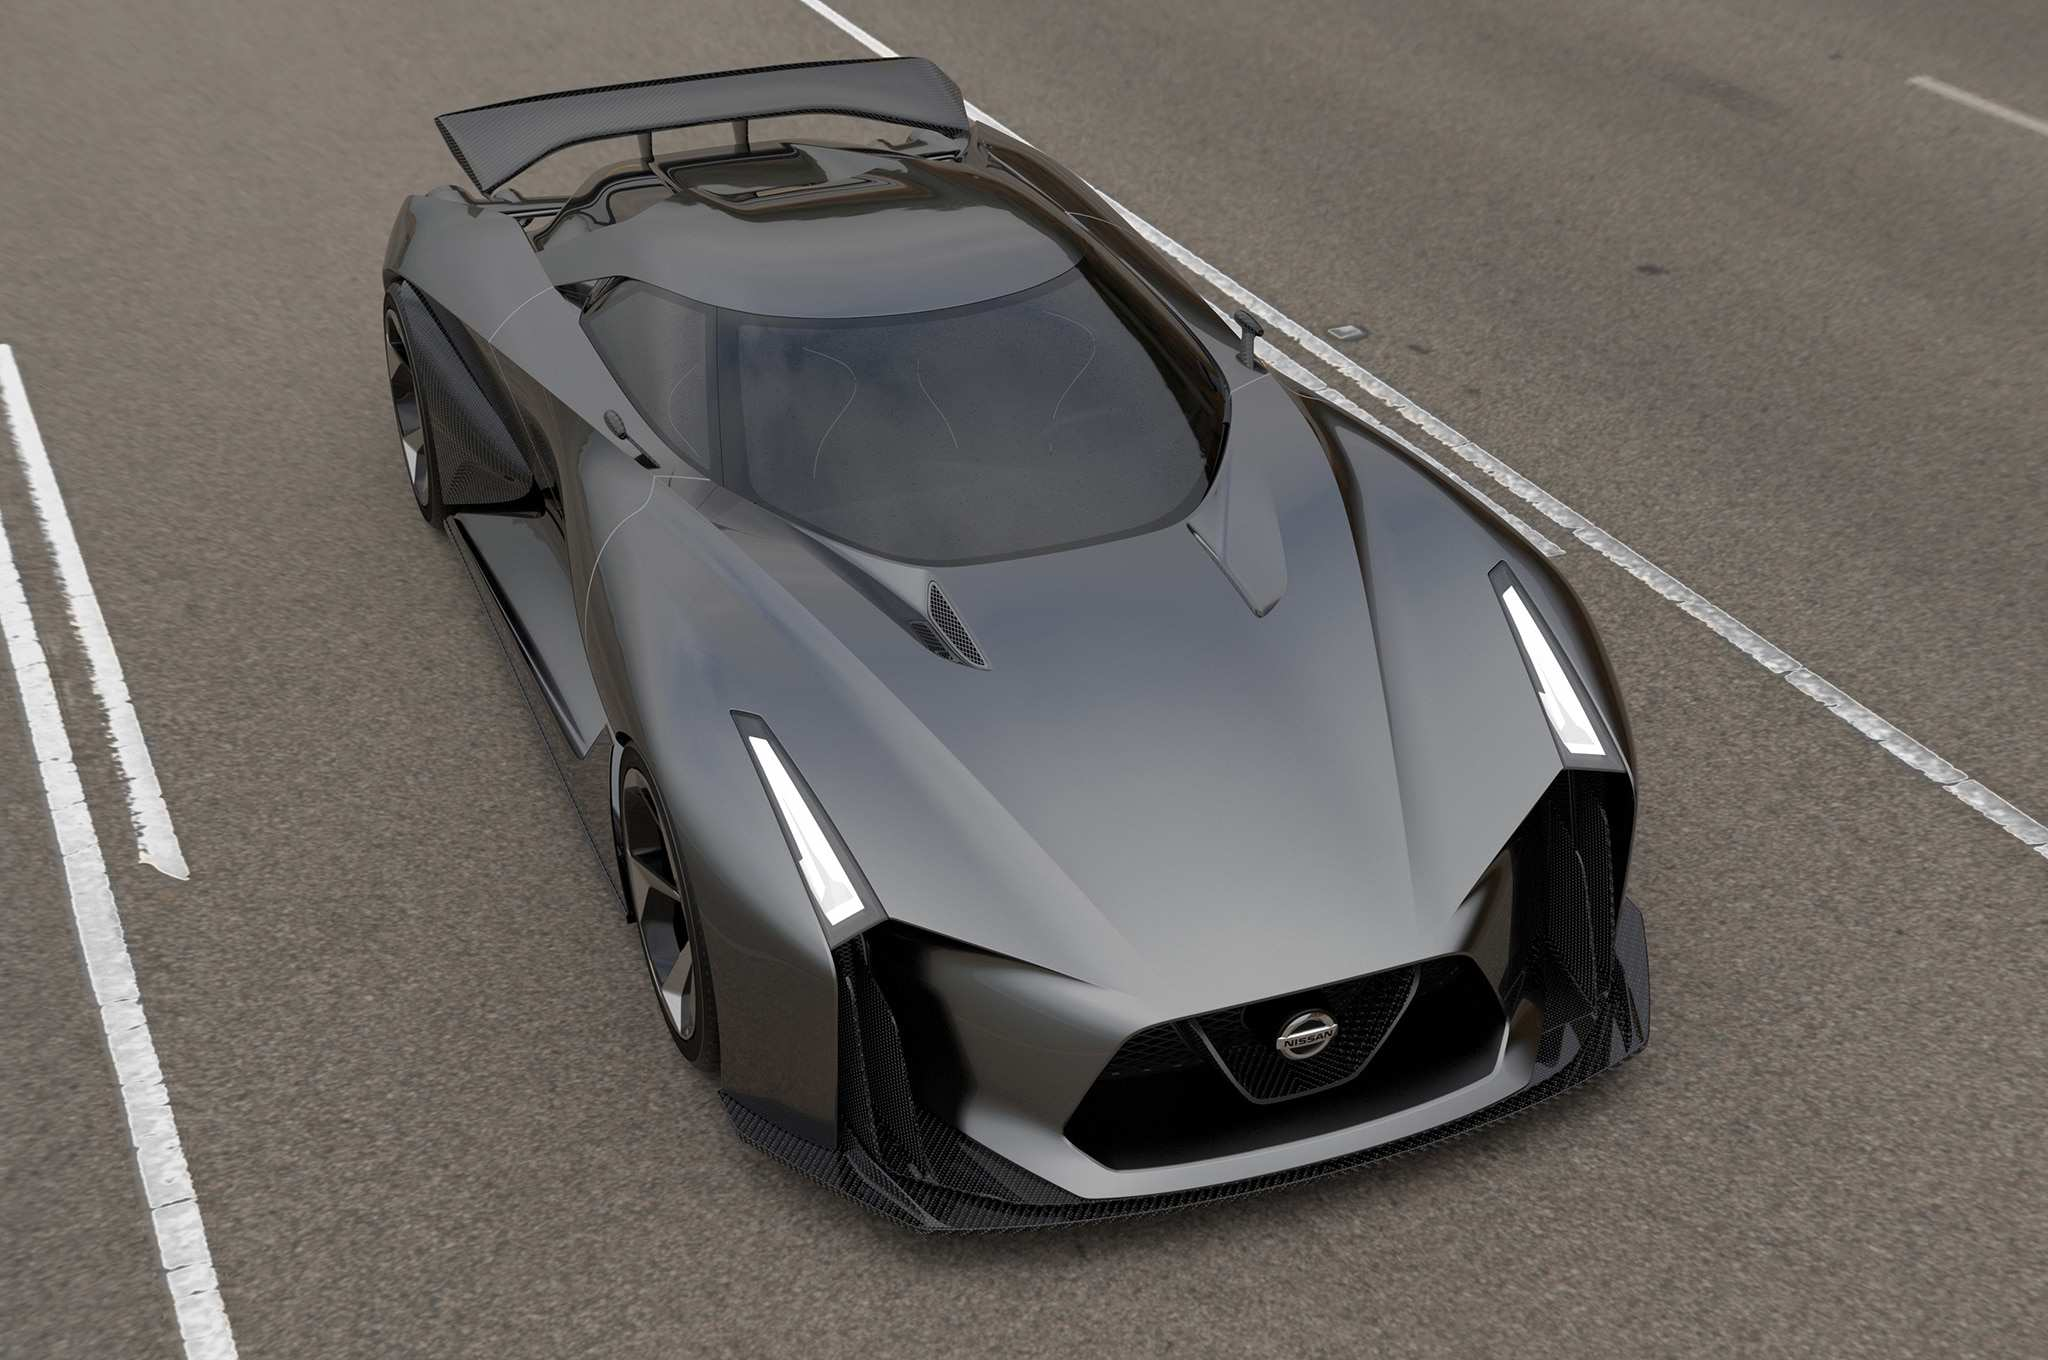 55 All New Nissan 2020 Vision Gt Redesign for Nissan 2020 Vision Gt